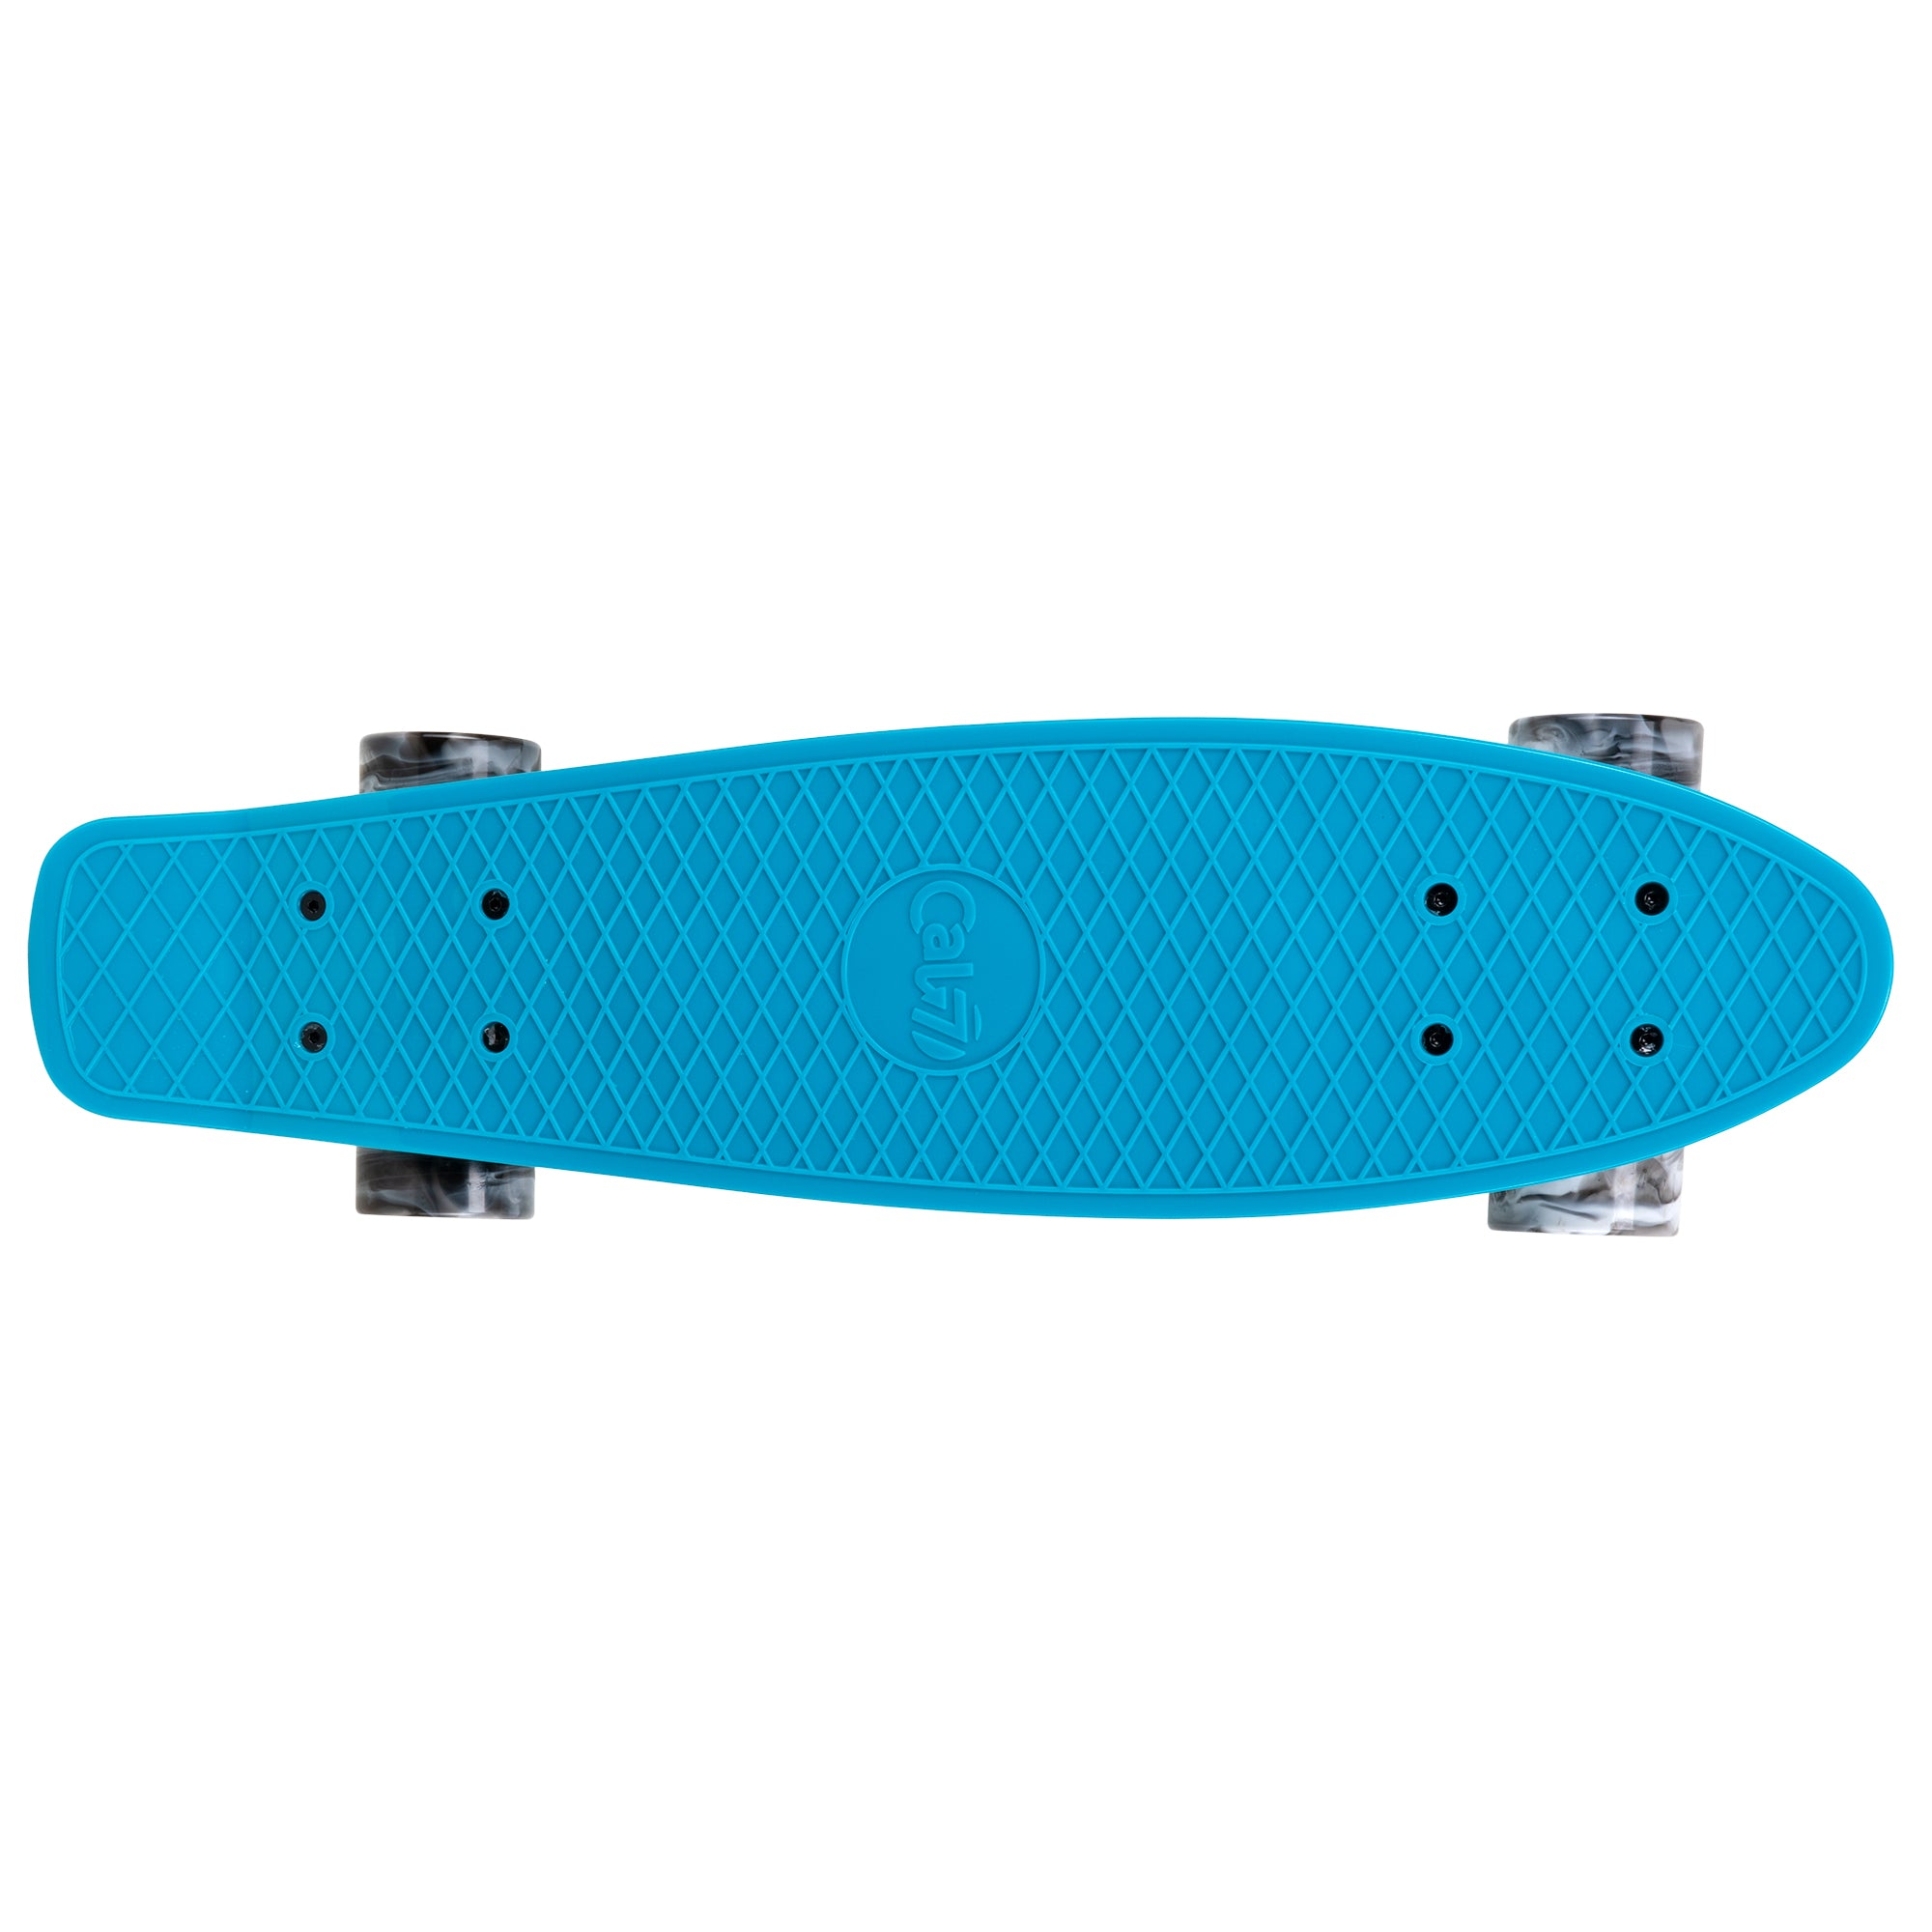 "Cal 7 Oceanic 22.5"" Mini Cruiser with Swirl Wheels -featuring a muted blue plastic deck, 78A black and white wheels."